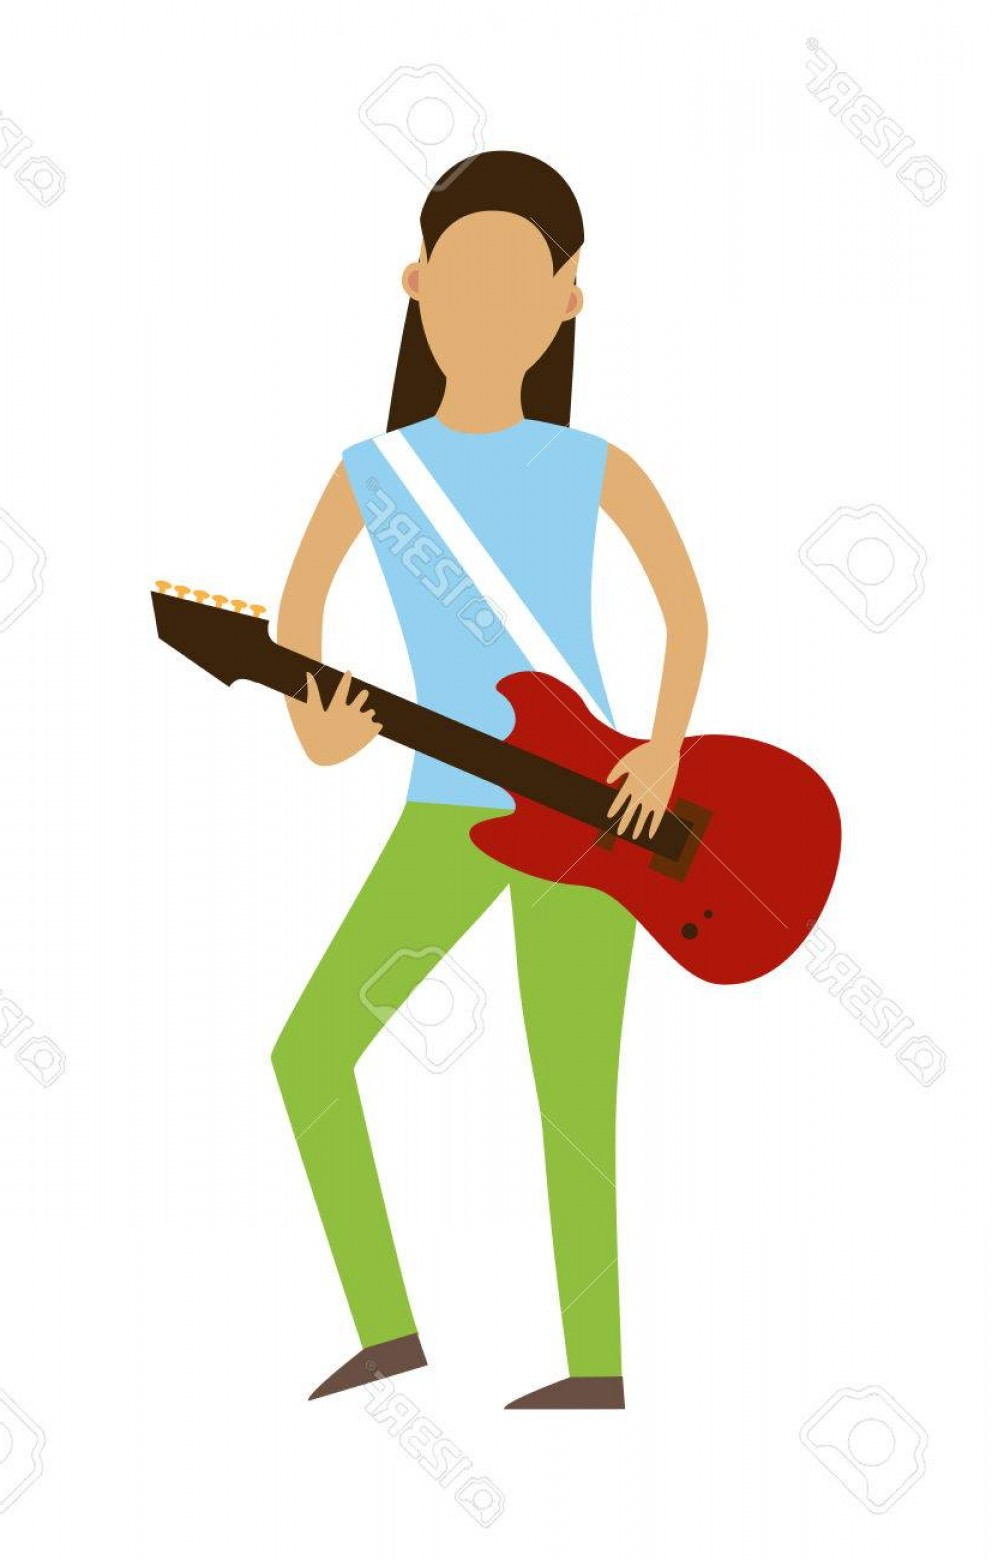 Musician Person Vector: Photostock Vector Musician People Flat Illustration Musician Cartoon Characters With Guitar Isolated On White Backgrou